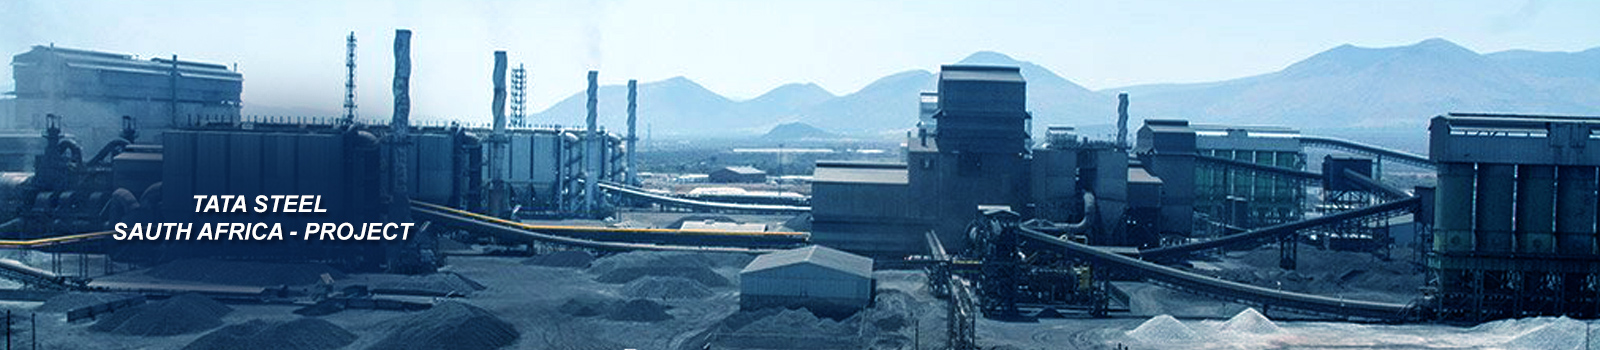 Tata Steel - SA Project